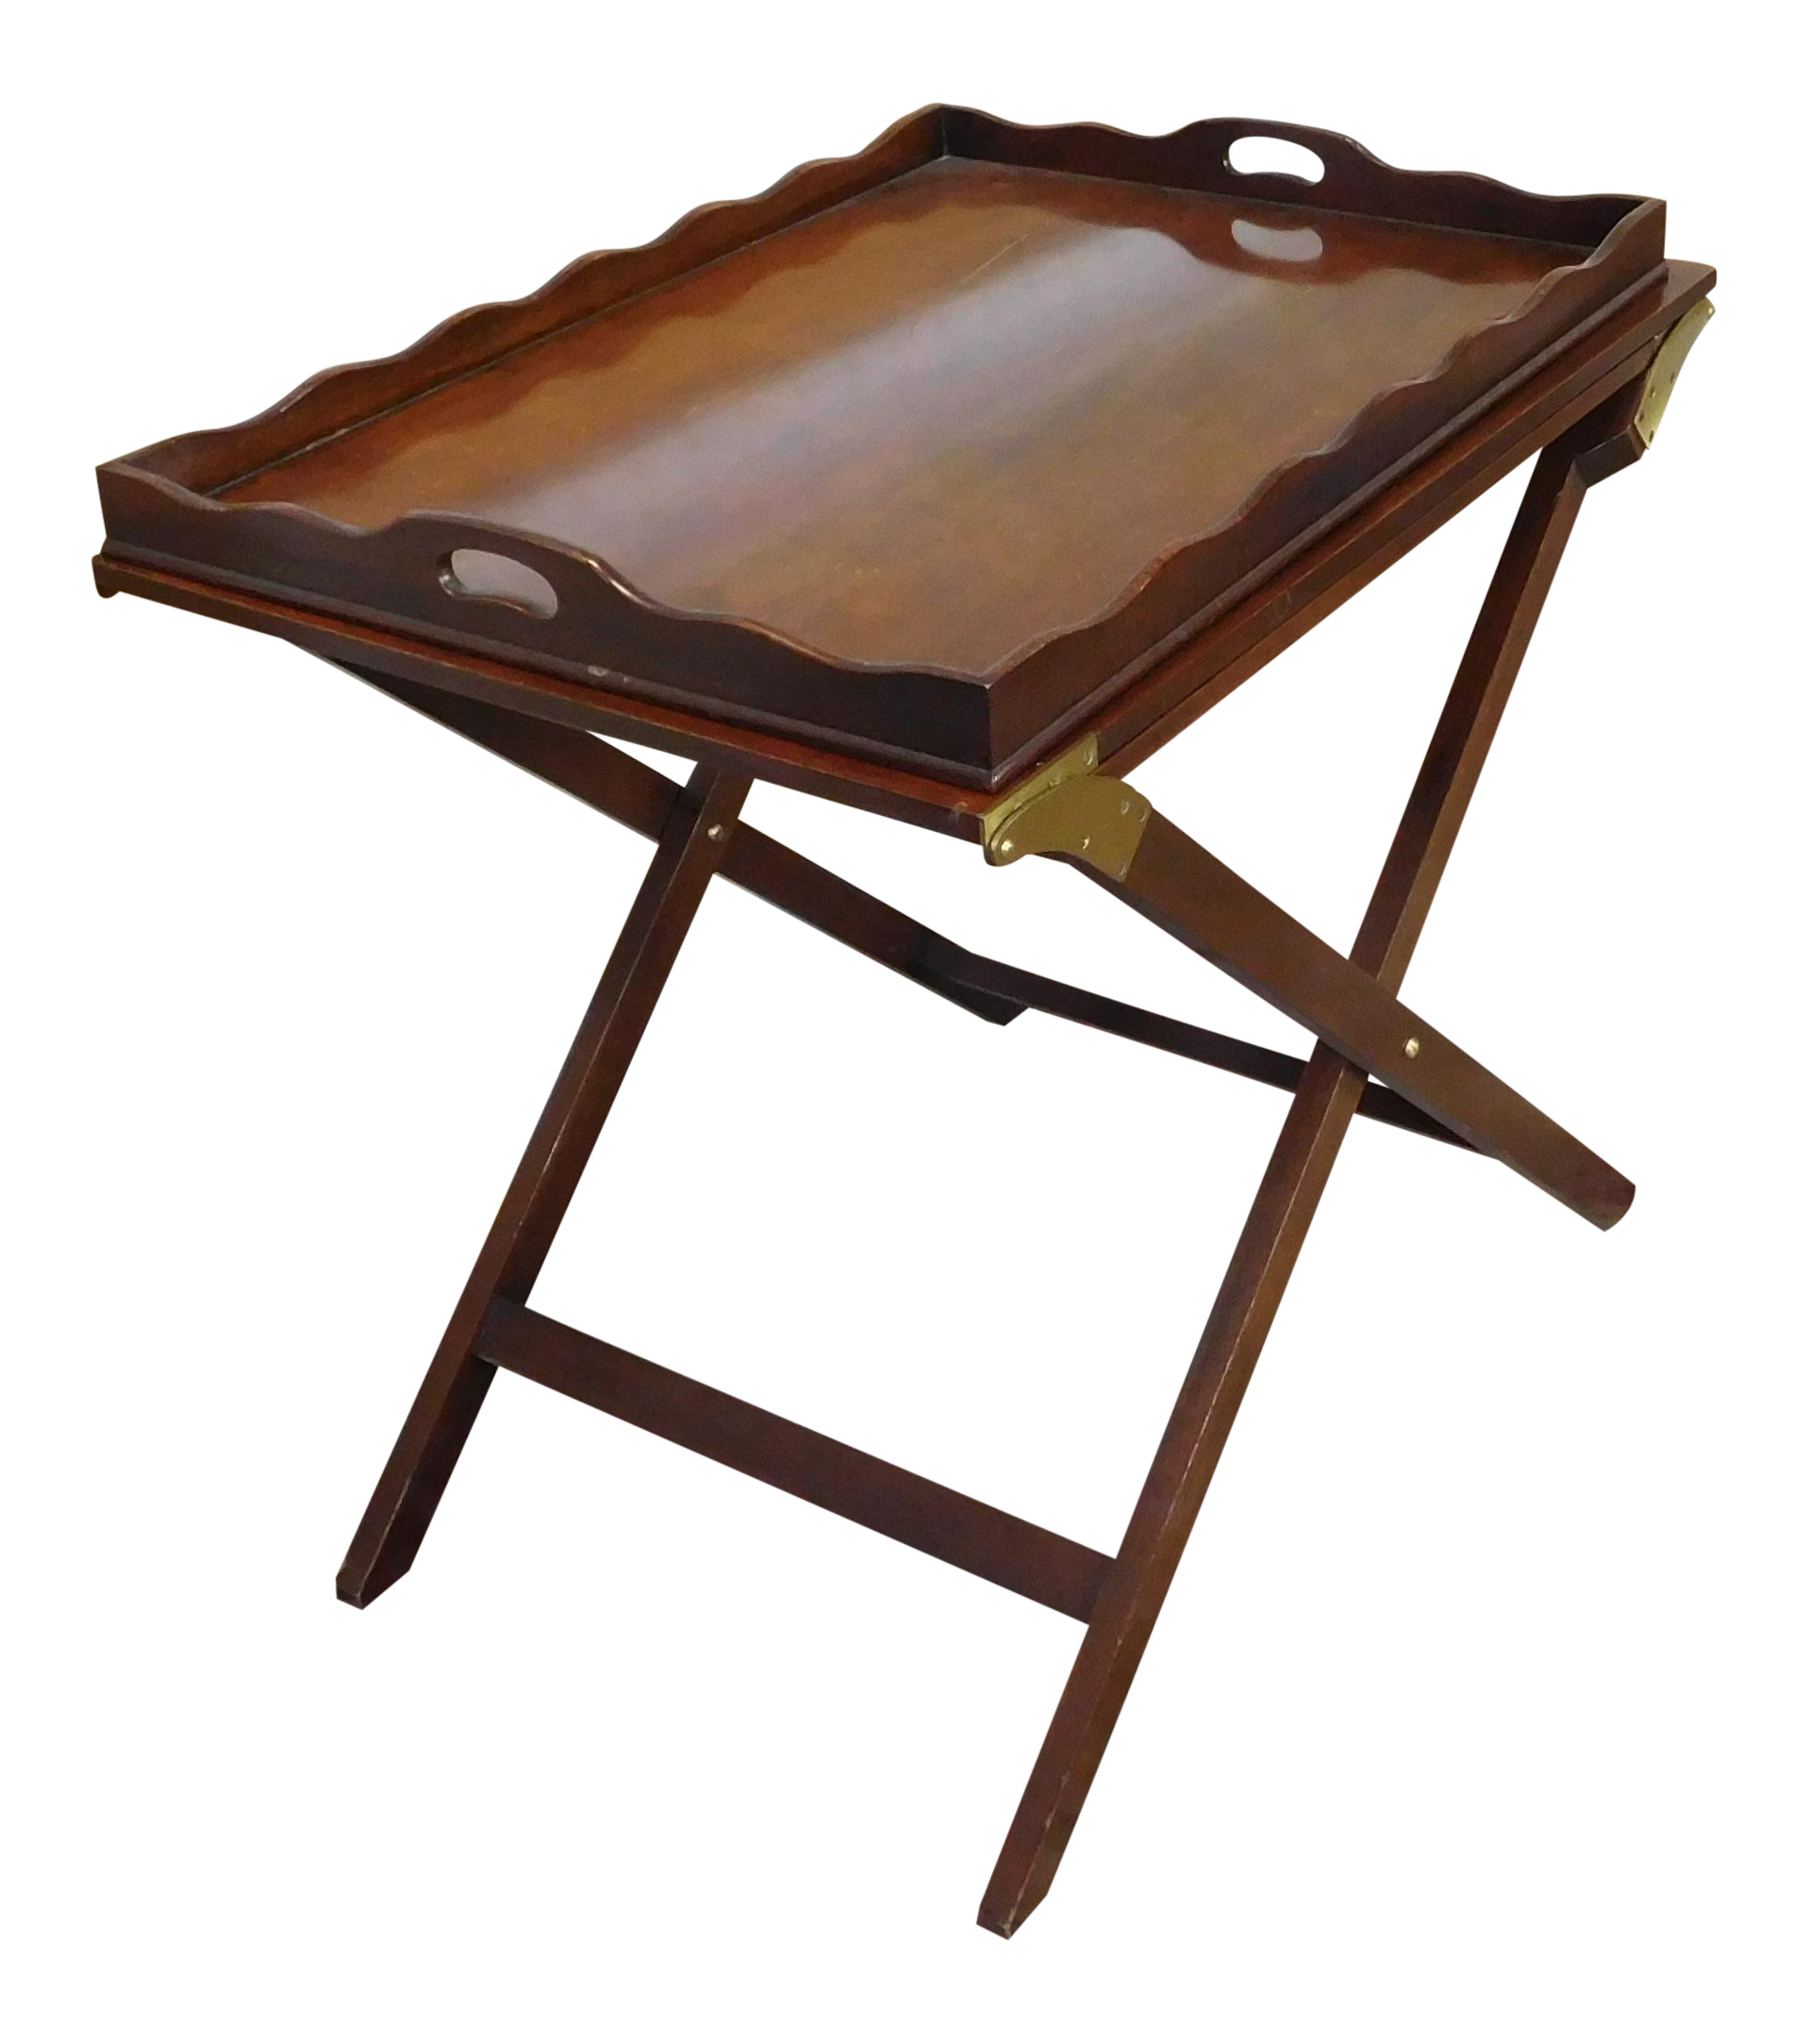 Baker drawing tray. Furniture lexicon collection mahogany